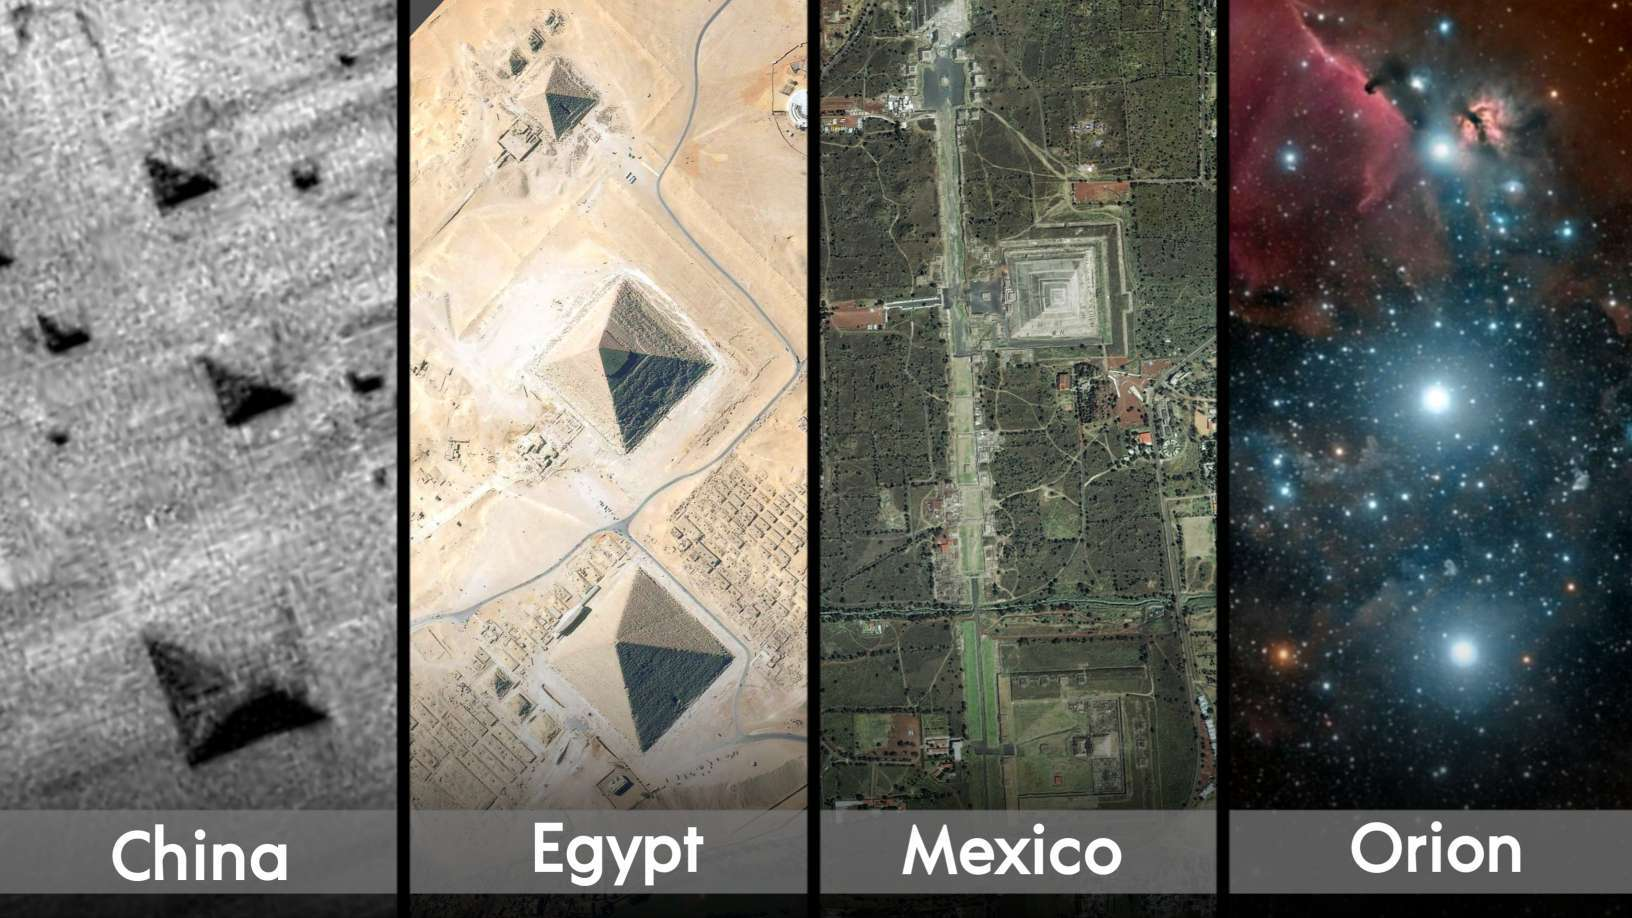 Monuments spread across planet Earth, have an incredible, precise alignment with Orions three stars; Alnitak, Alnilam, and Mintaka